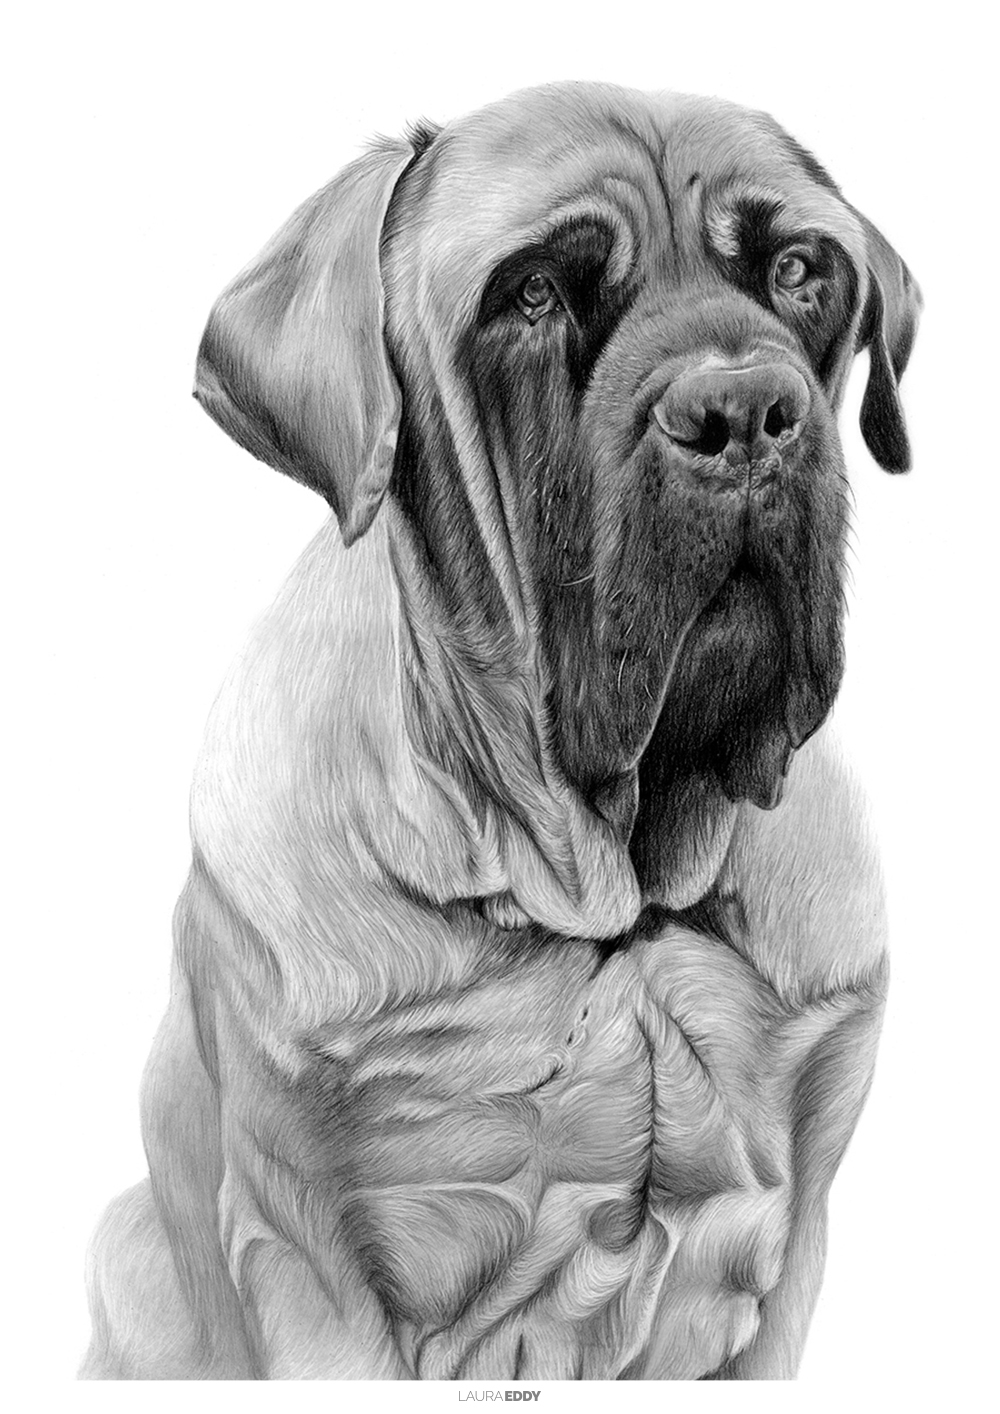 laura-eddy-drawing-george-english-mastiff-branded.jpg